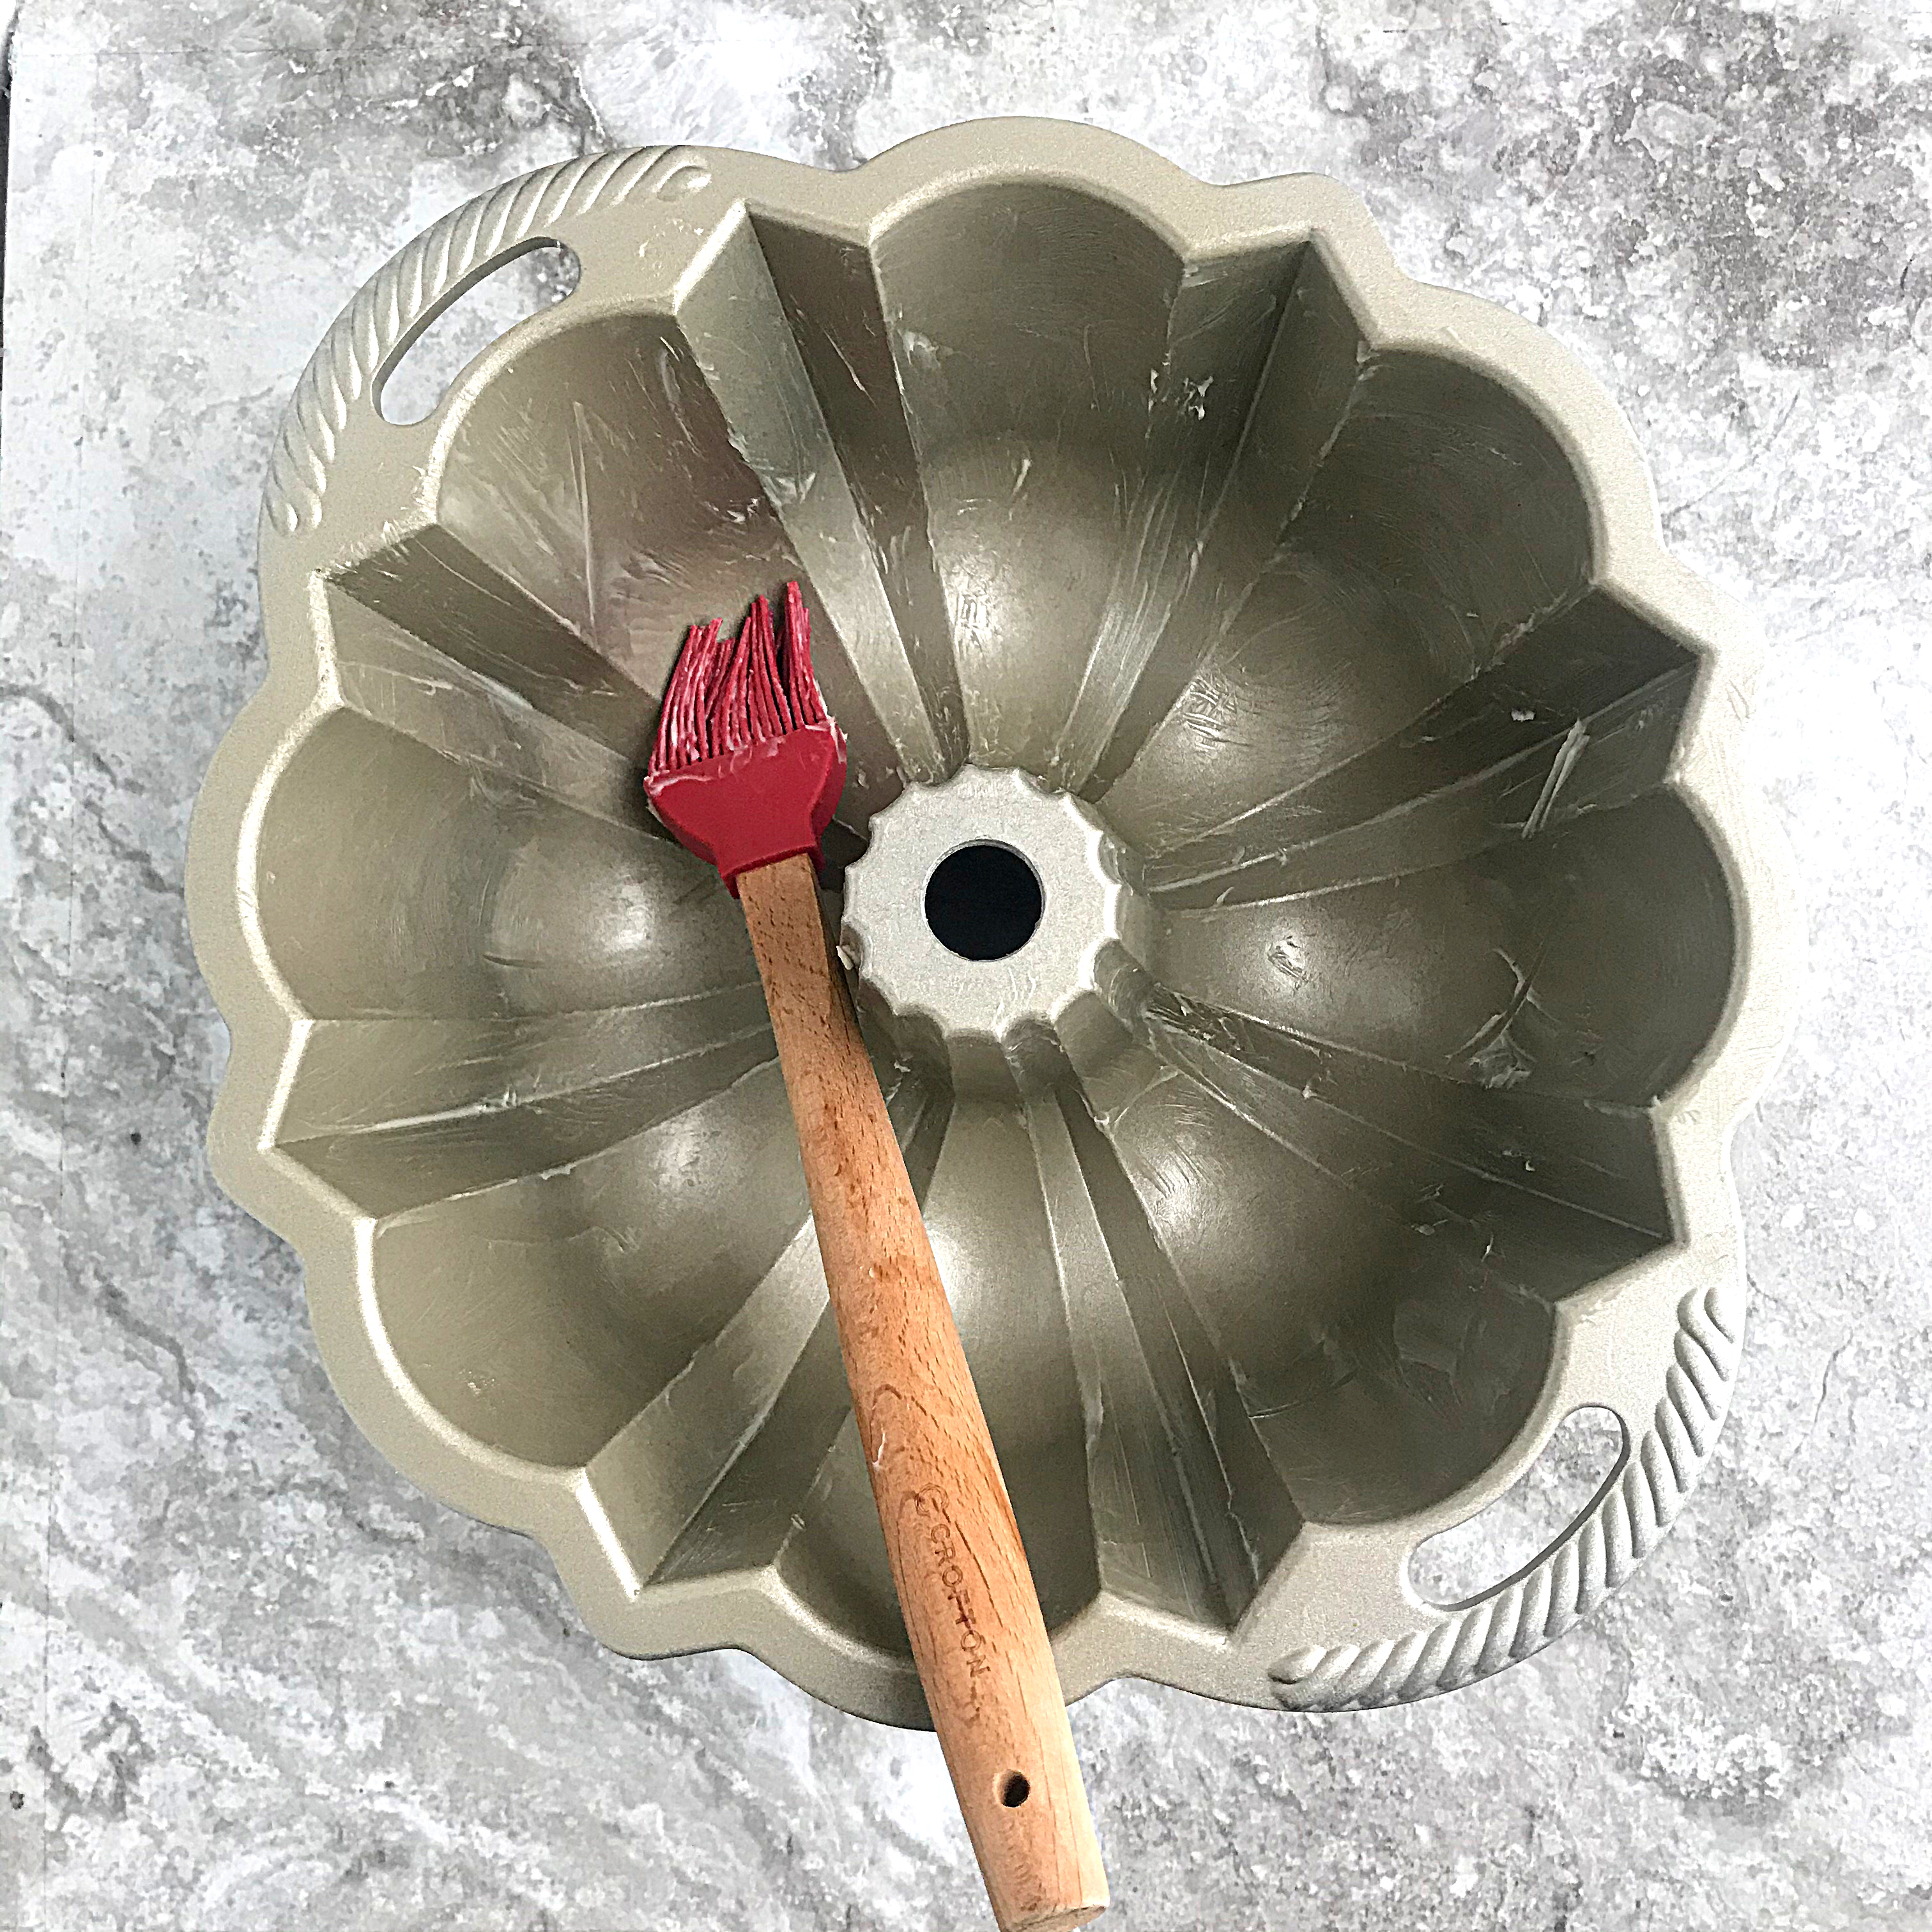 applying butter to a bundt pan with s red bristled pastry brush. first step on how to grease a bundt pan,